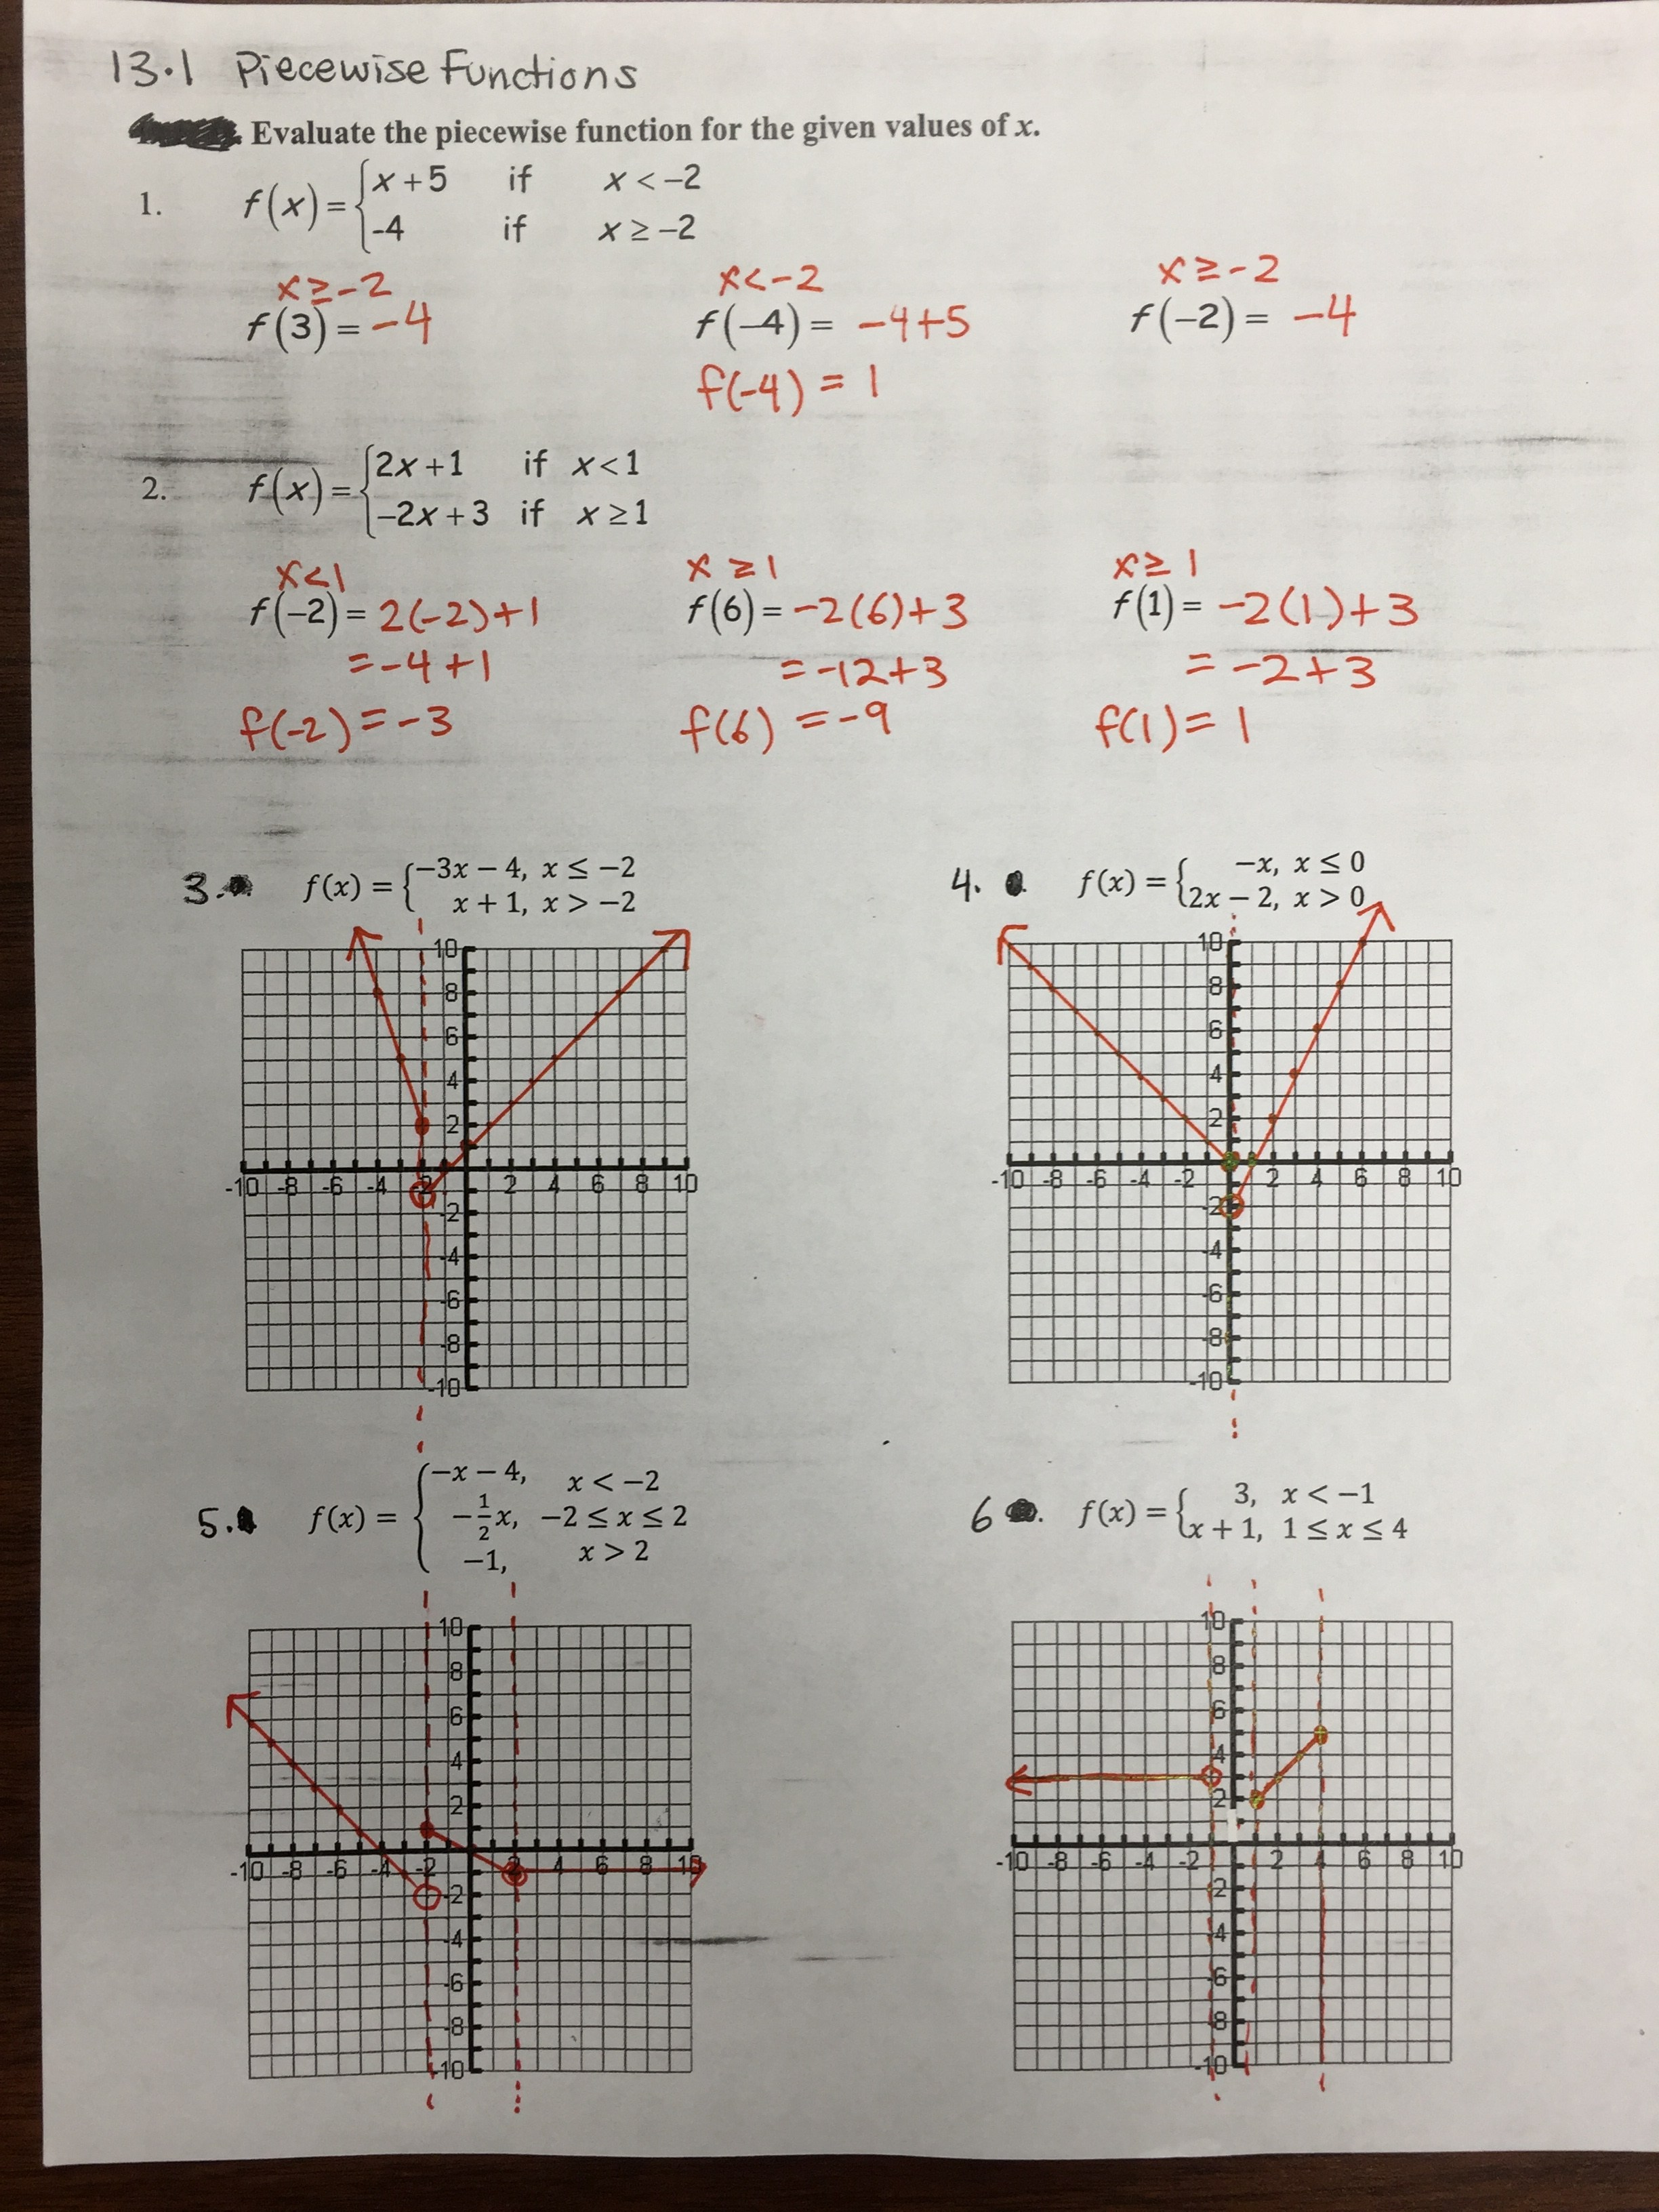 Worksheets Worksheet Piecewise Functions Answers worksheet piecewise functions answers fun south pasadena high school jpg 13 1 practice solutions jpg